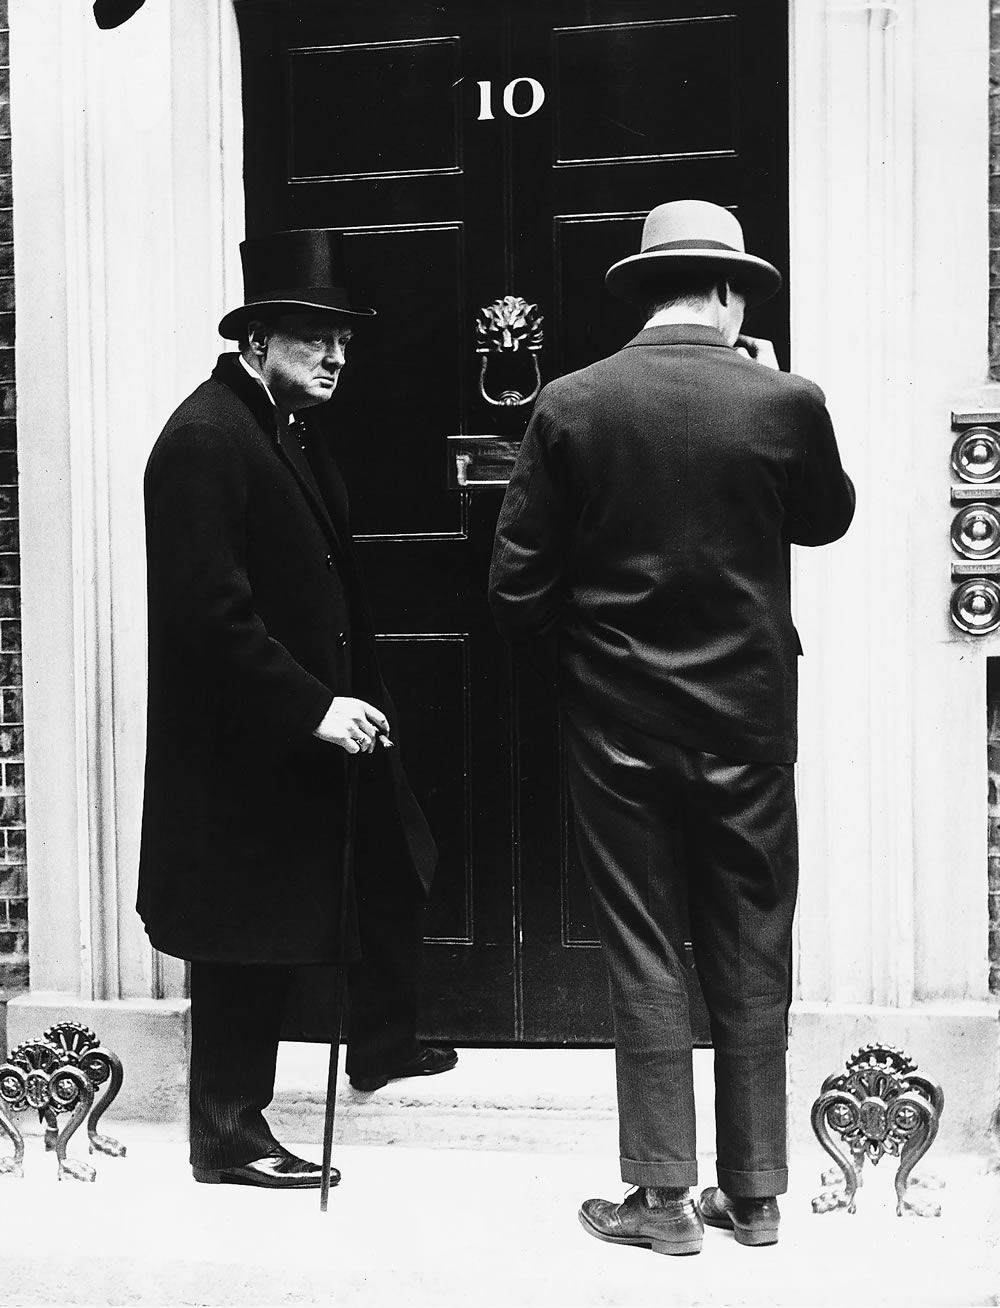 Home Secretary Winston Churchill at 10 Downing Street, April 1926